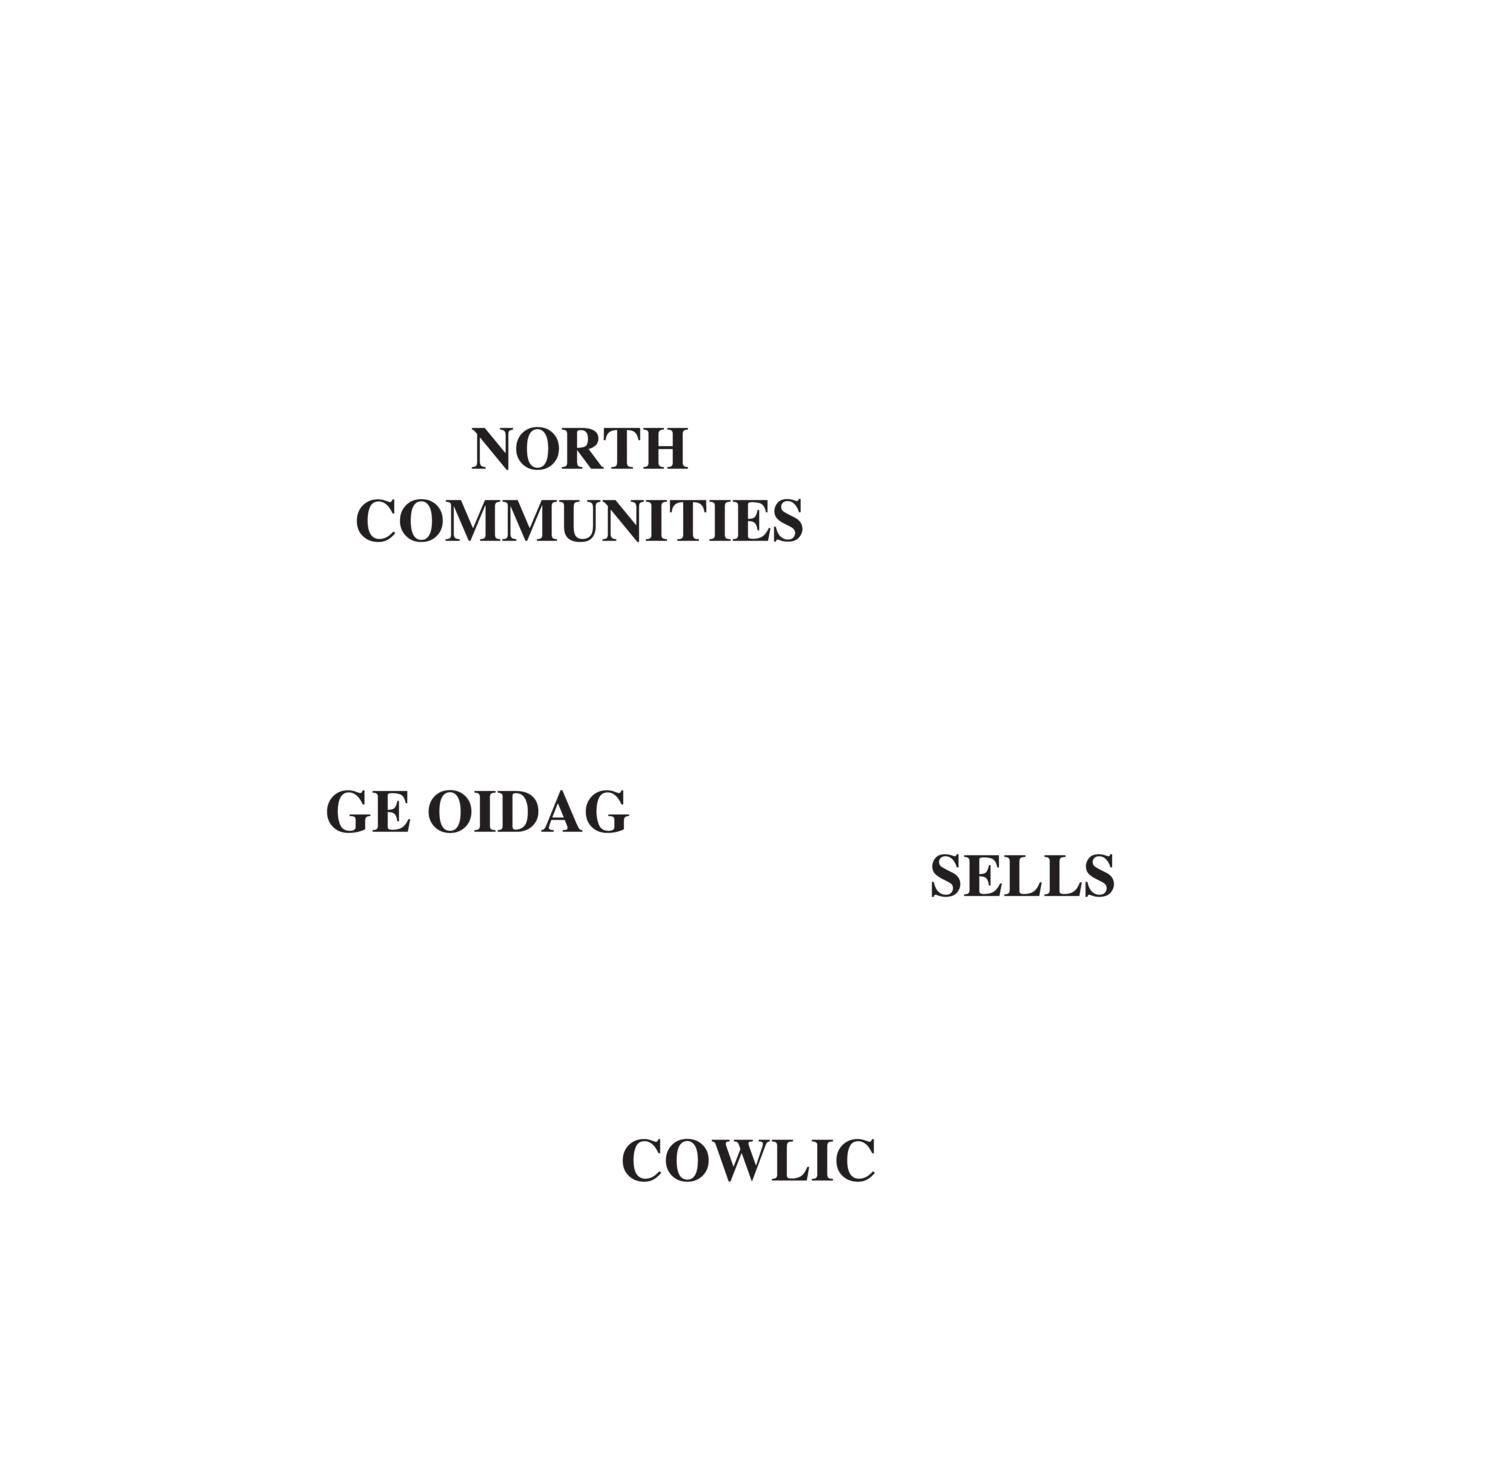 Sells District Your Source Of Information About Tohono Oodham